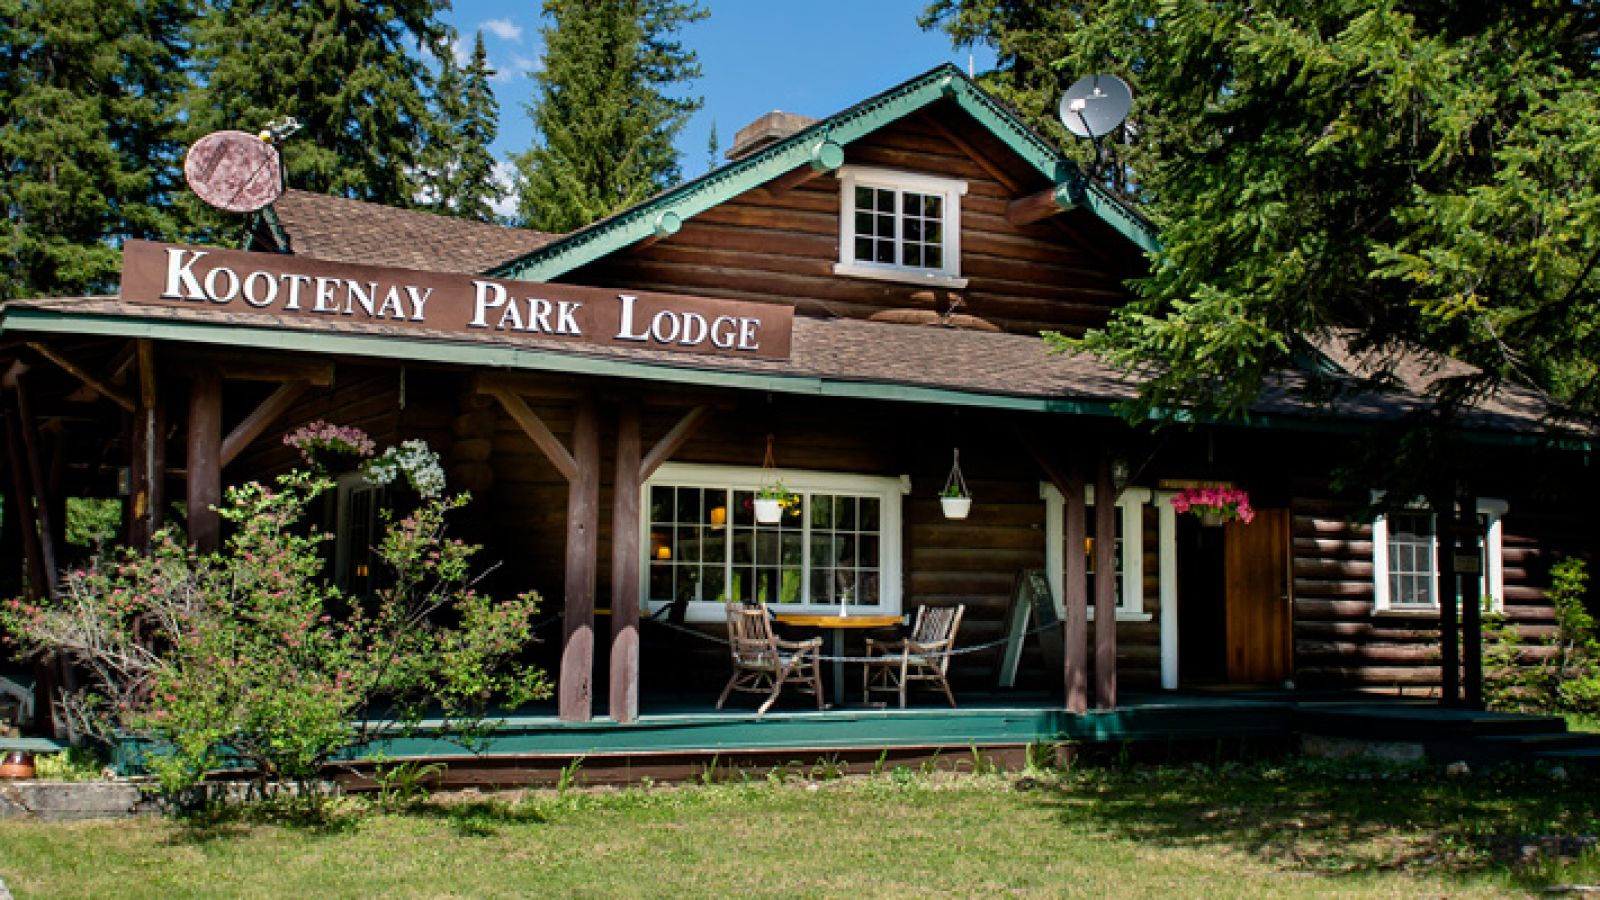 Welcome to the Kootenay Park Lodge.